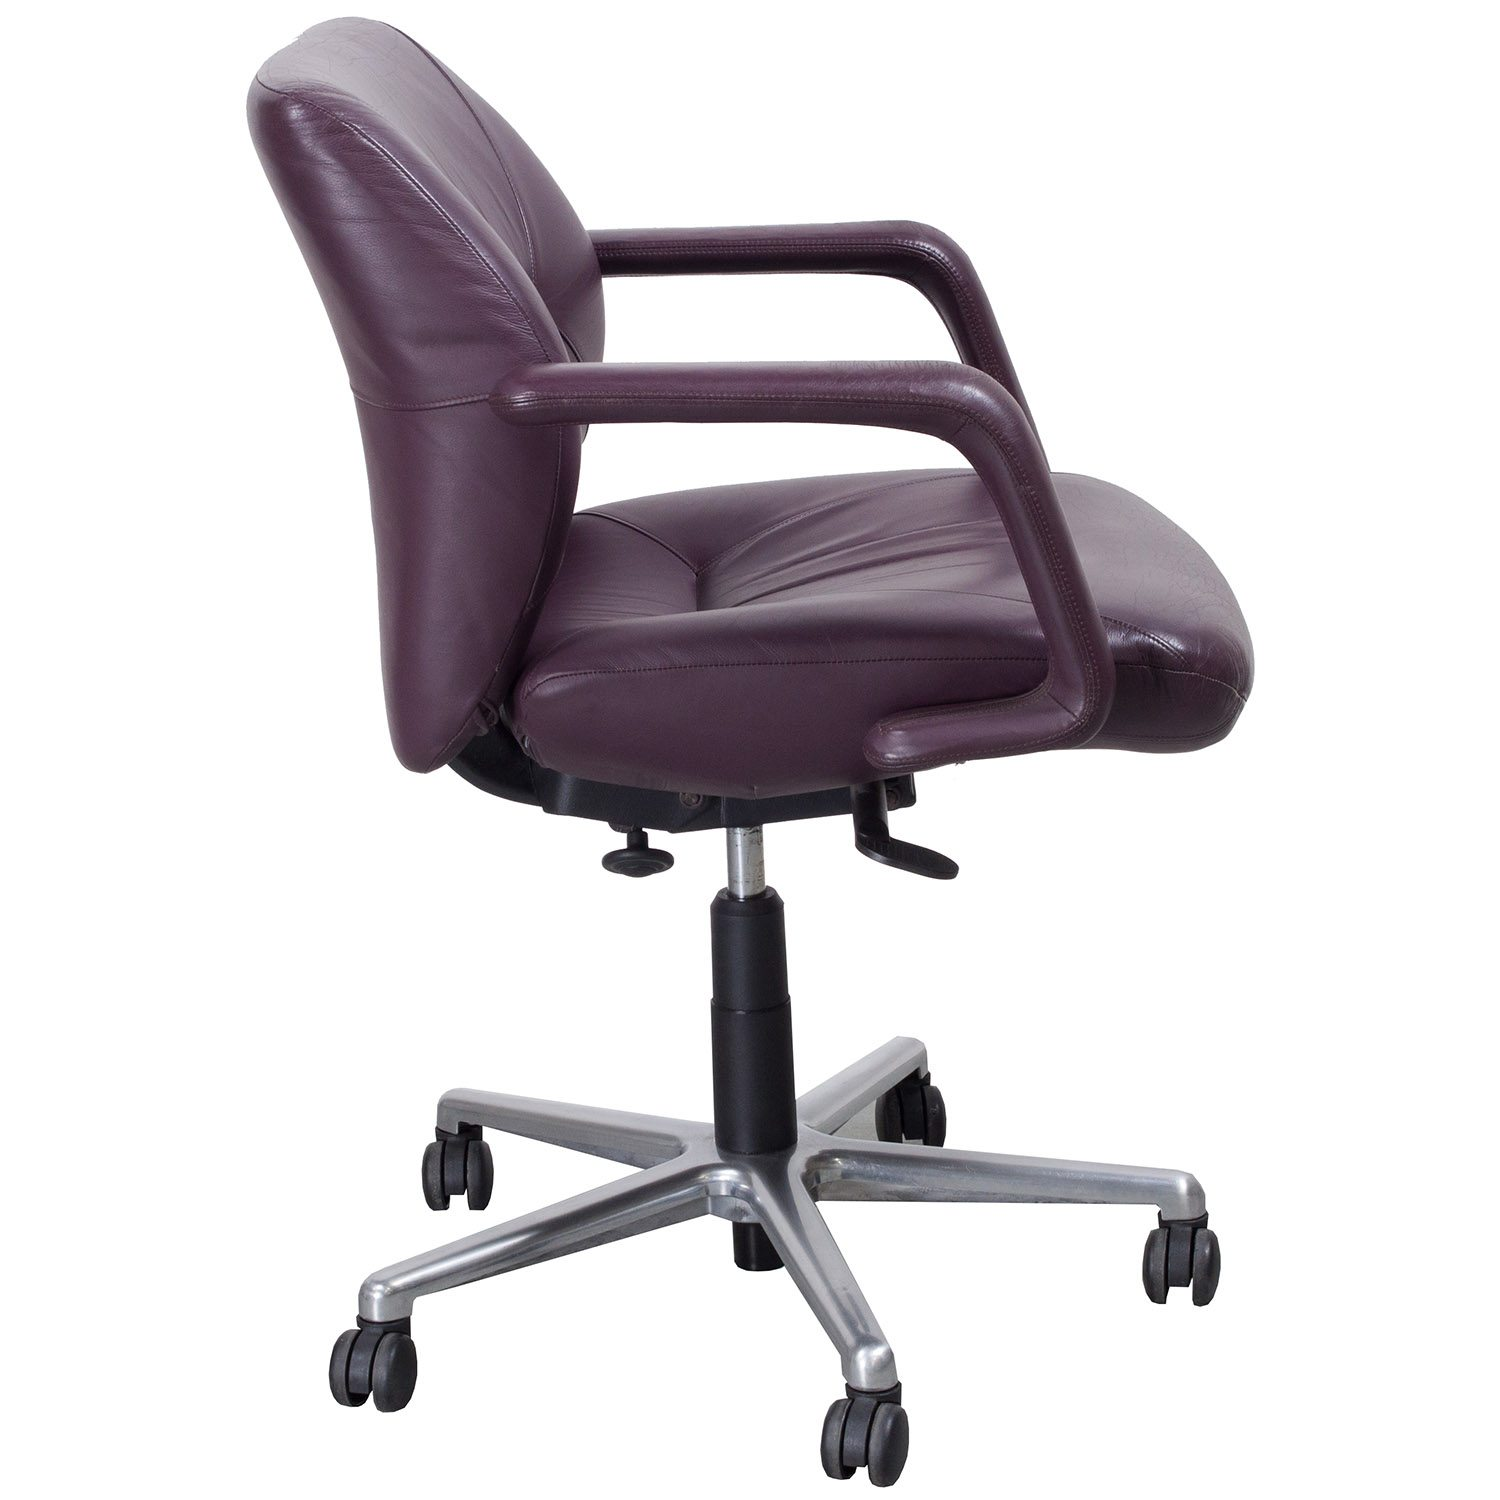 Low Back Chairs Keilhauer Respons Used Leather Managerial Low Back Chair